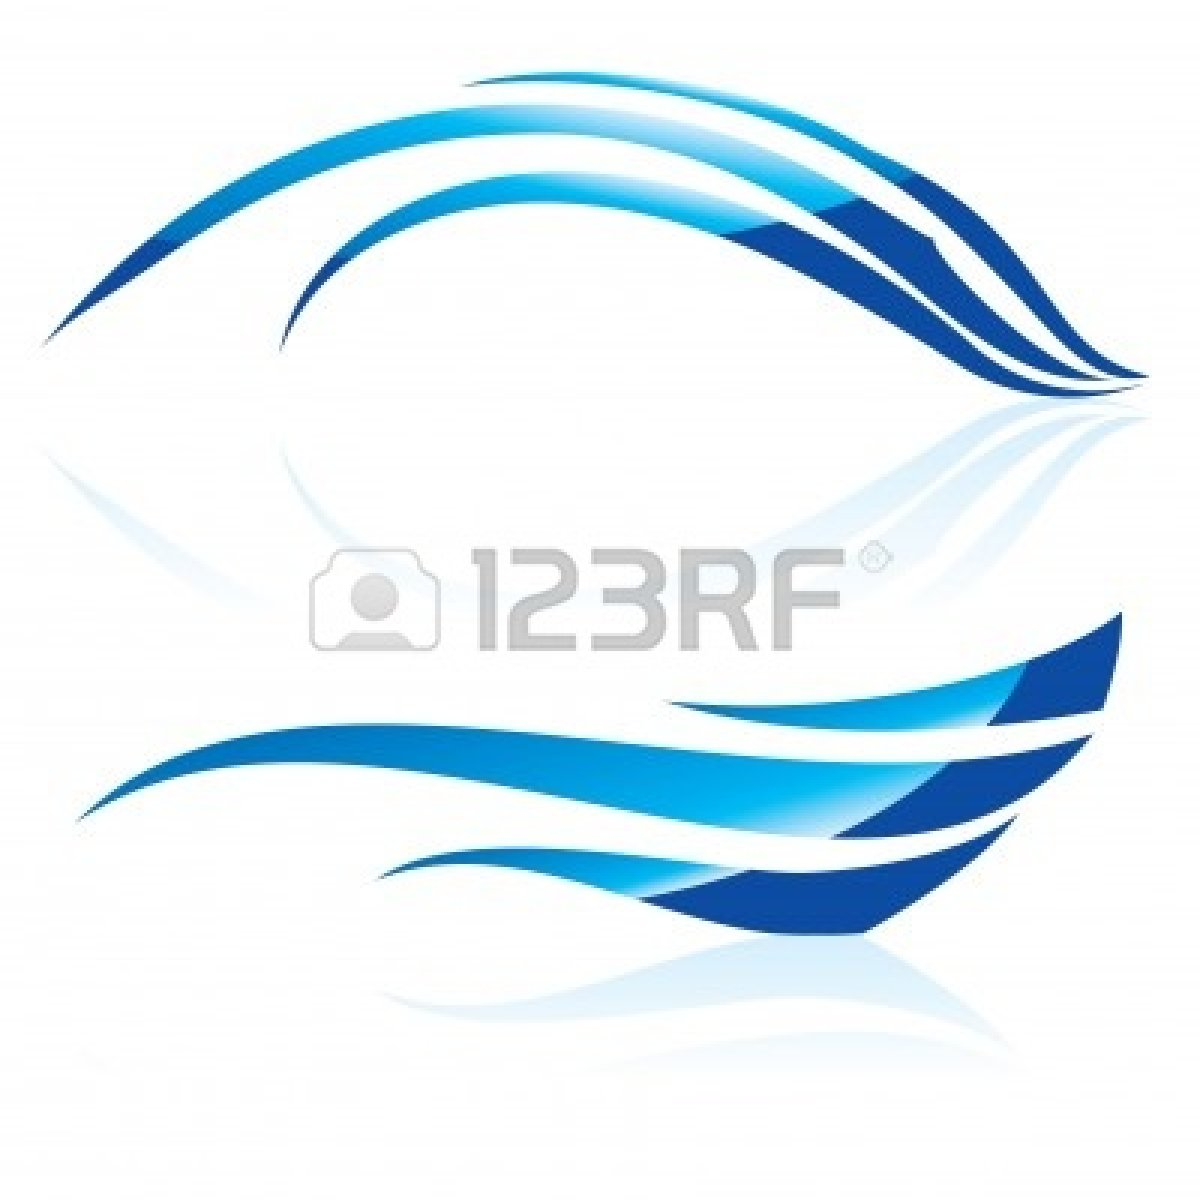 1200x1200 Wave Clipart Water Flow